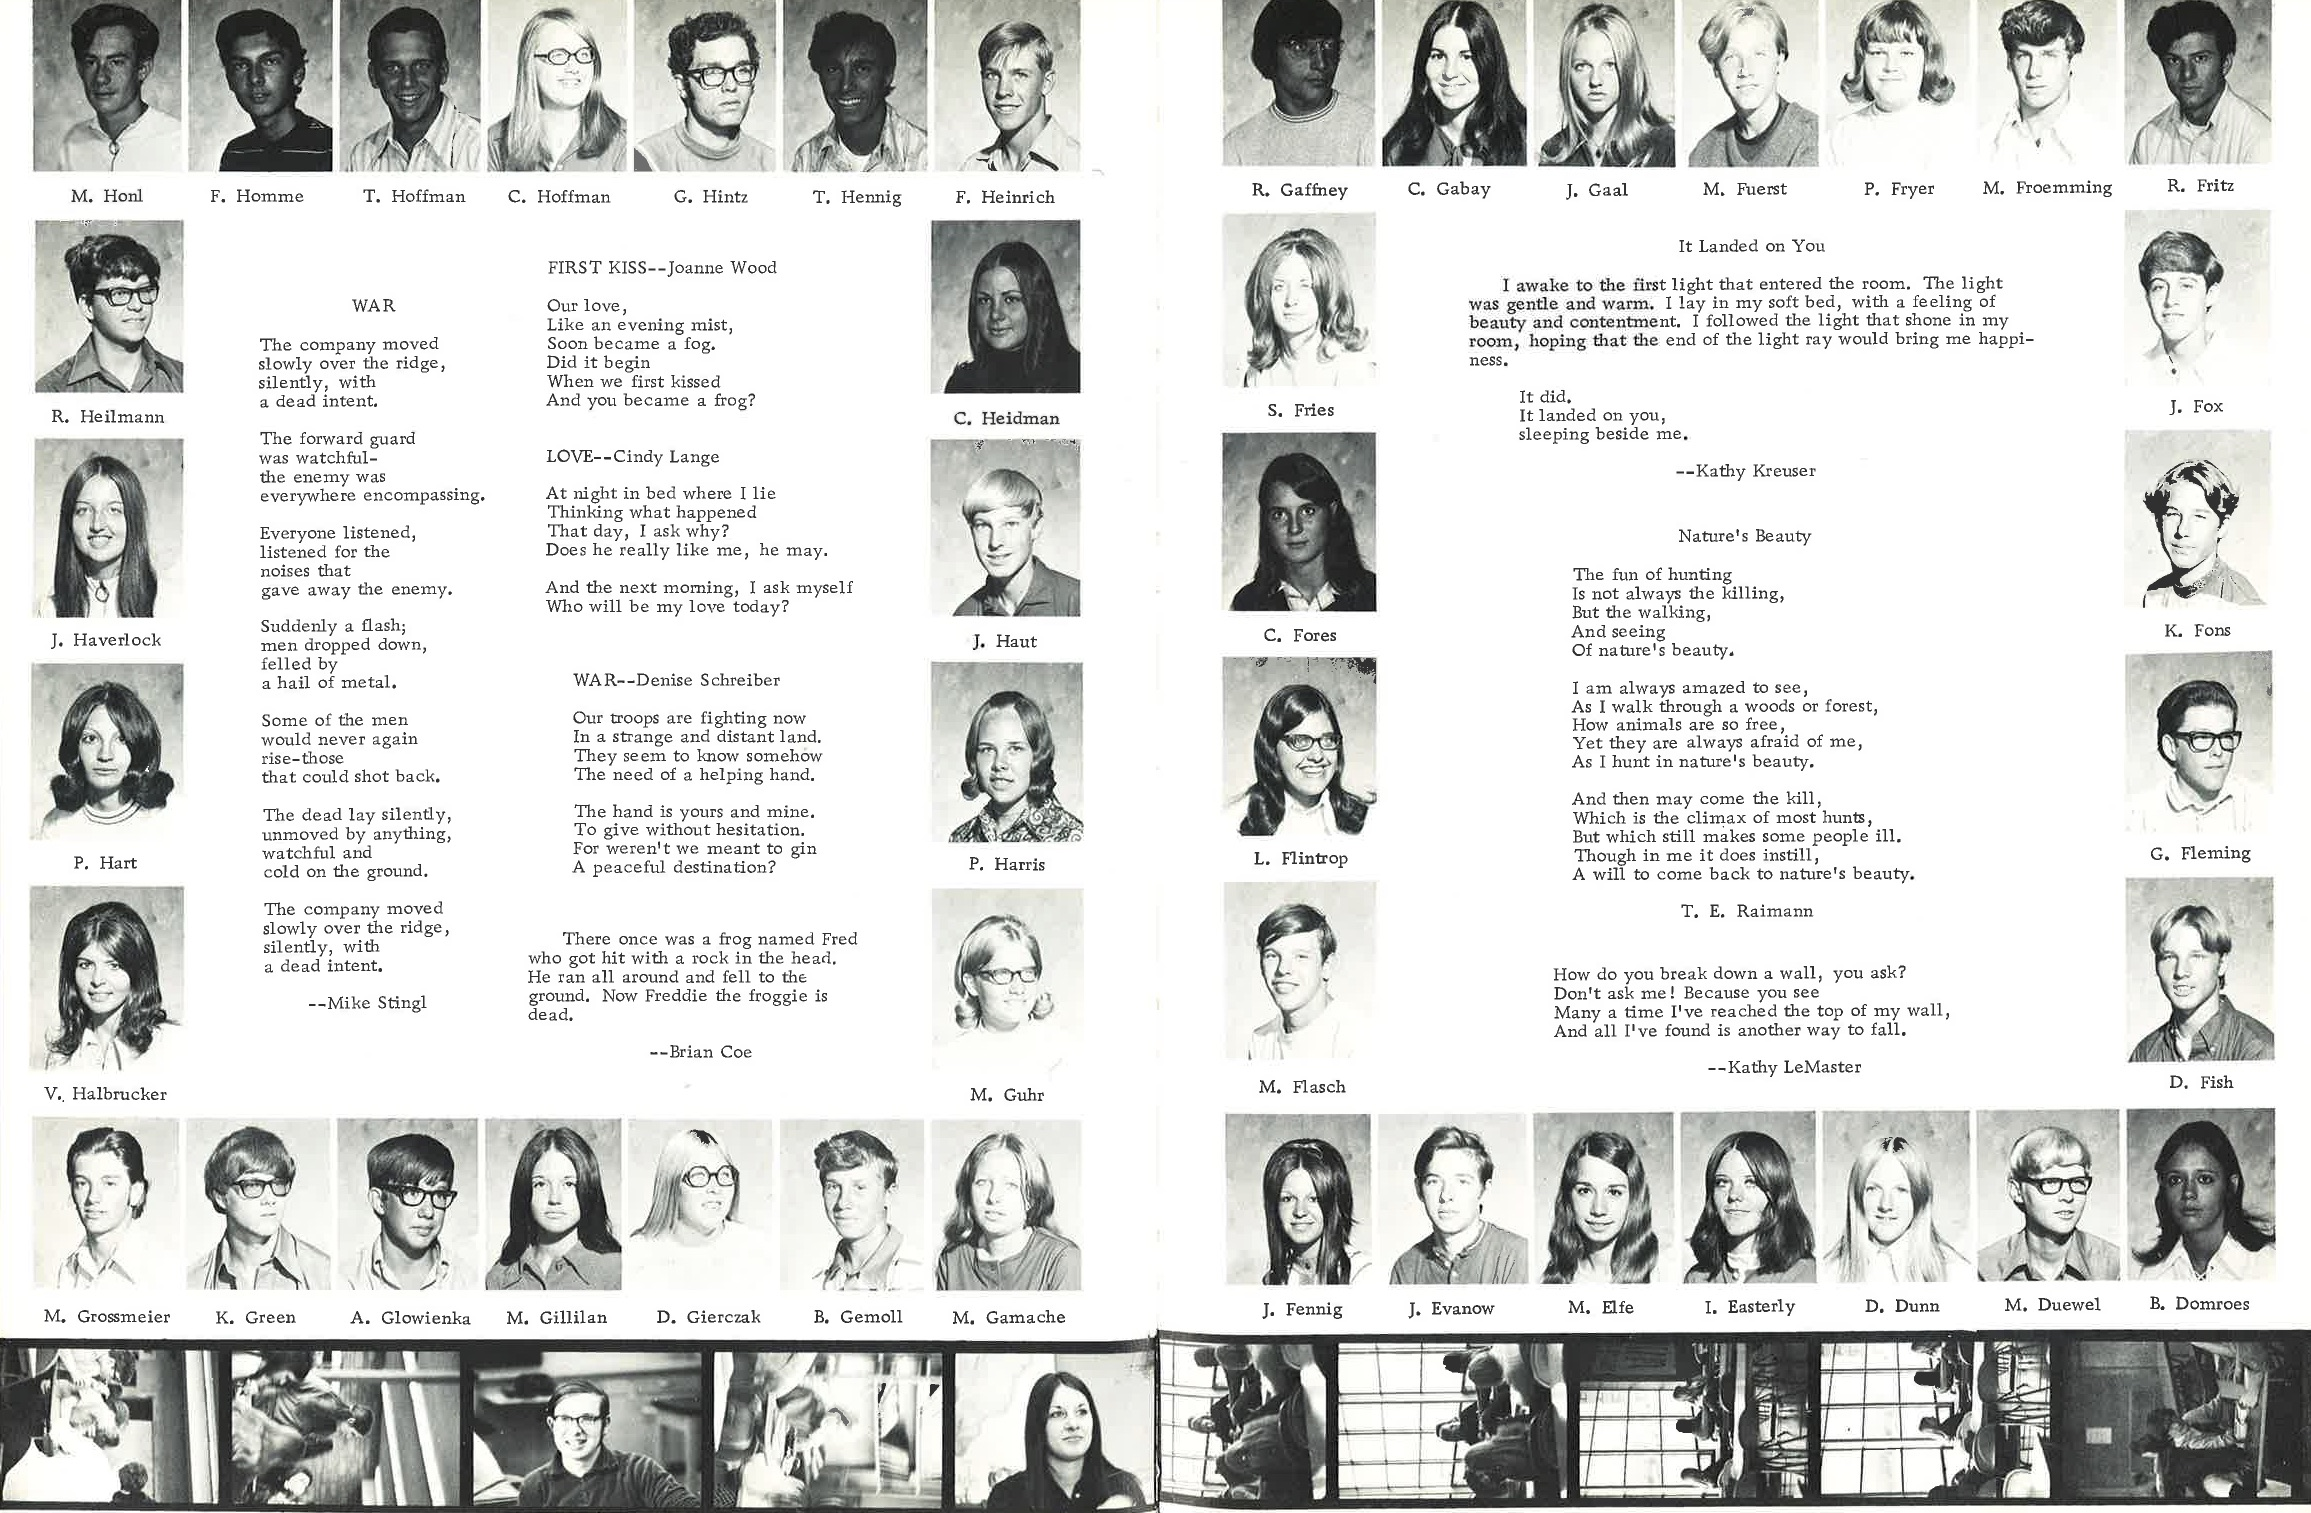 1972_Yearbook_90-91.jpg